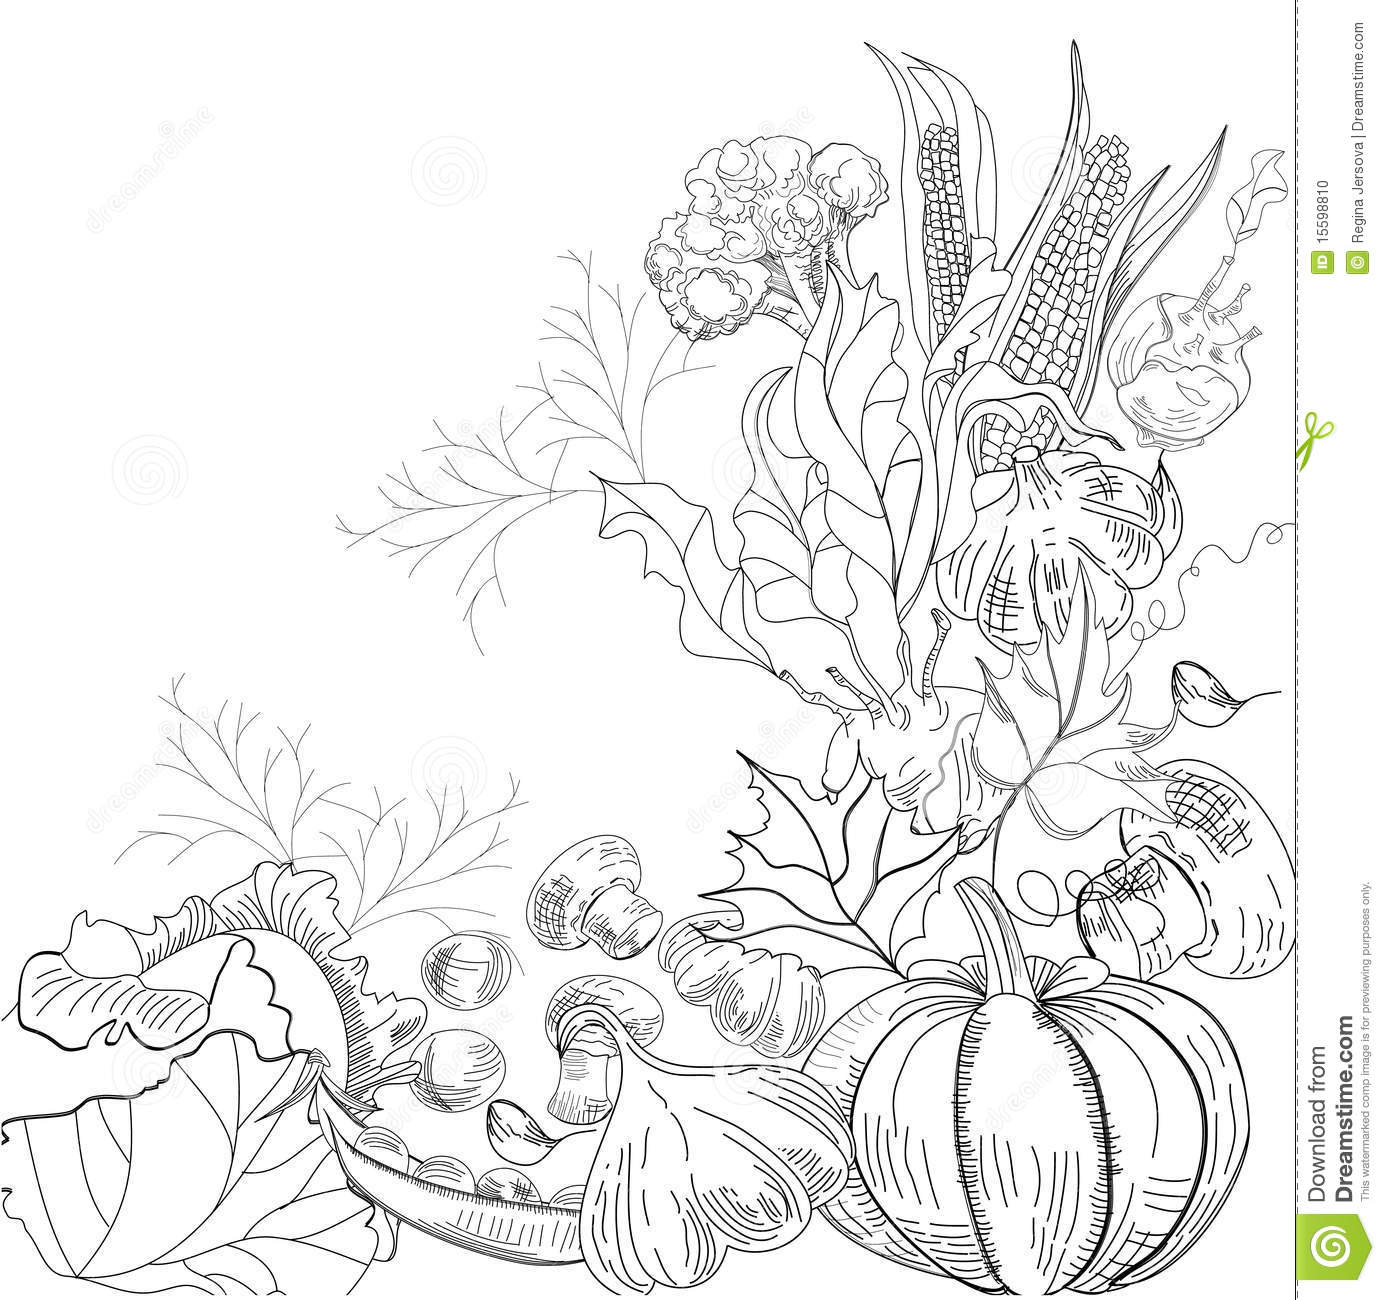 Vegetable garden sketch - Royalty Free Stock Photo Download Sketch With Vegetable